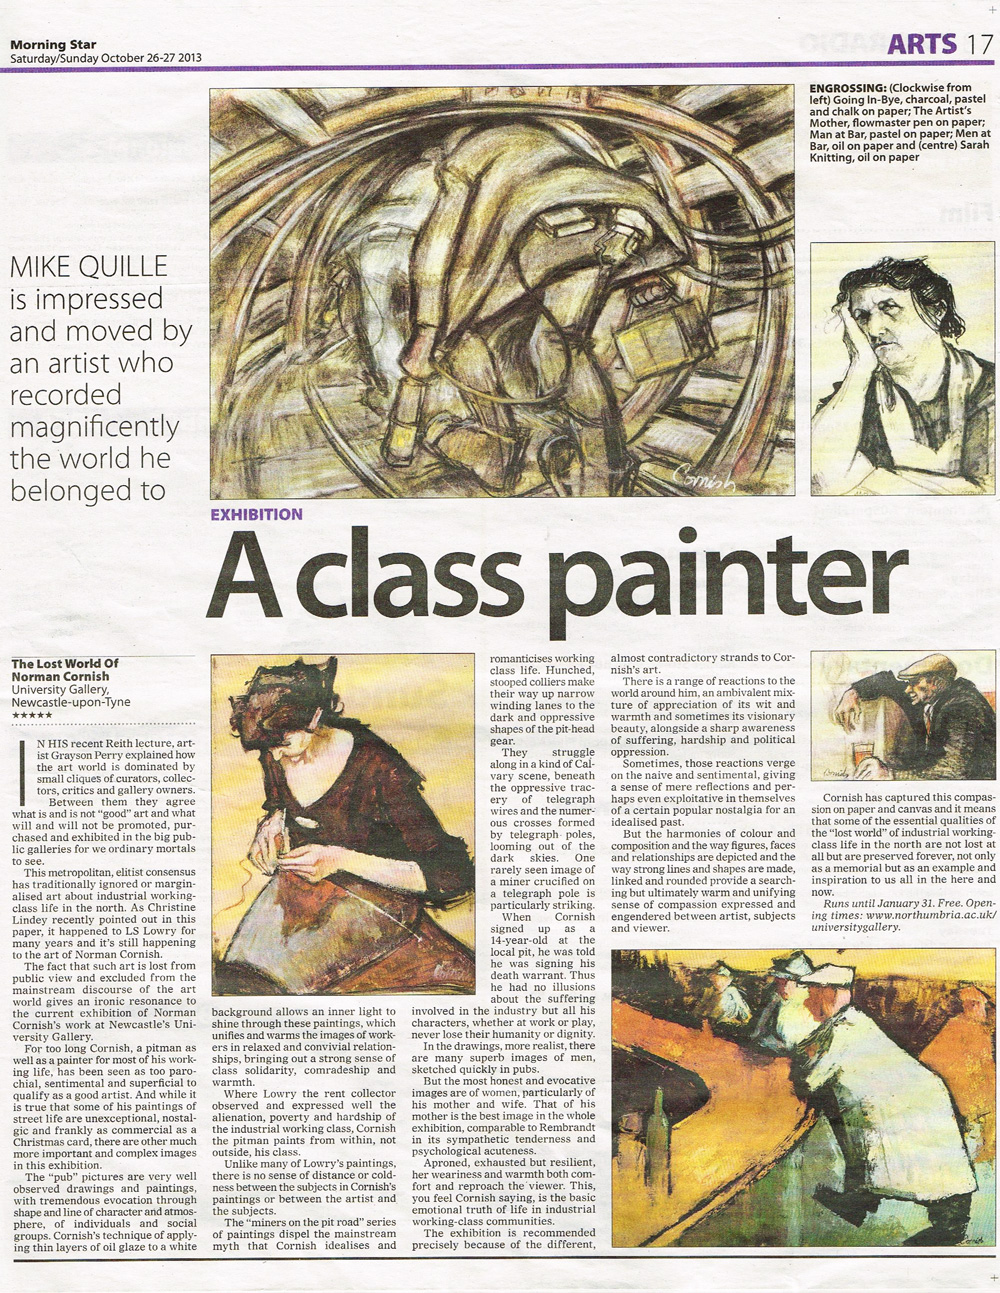 Newspaper article about Norman Cornish from the Morning Star